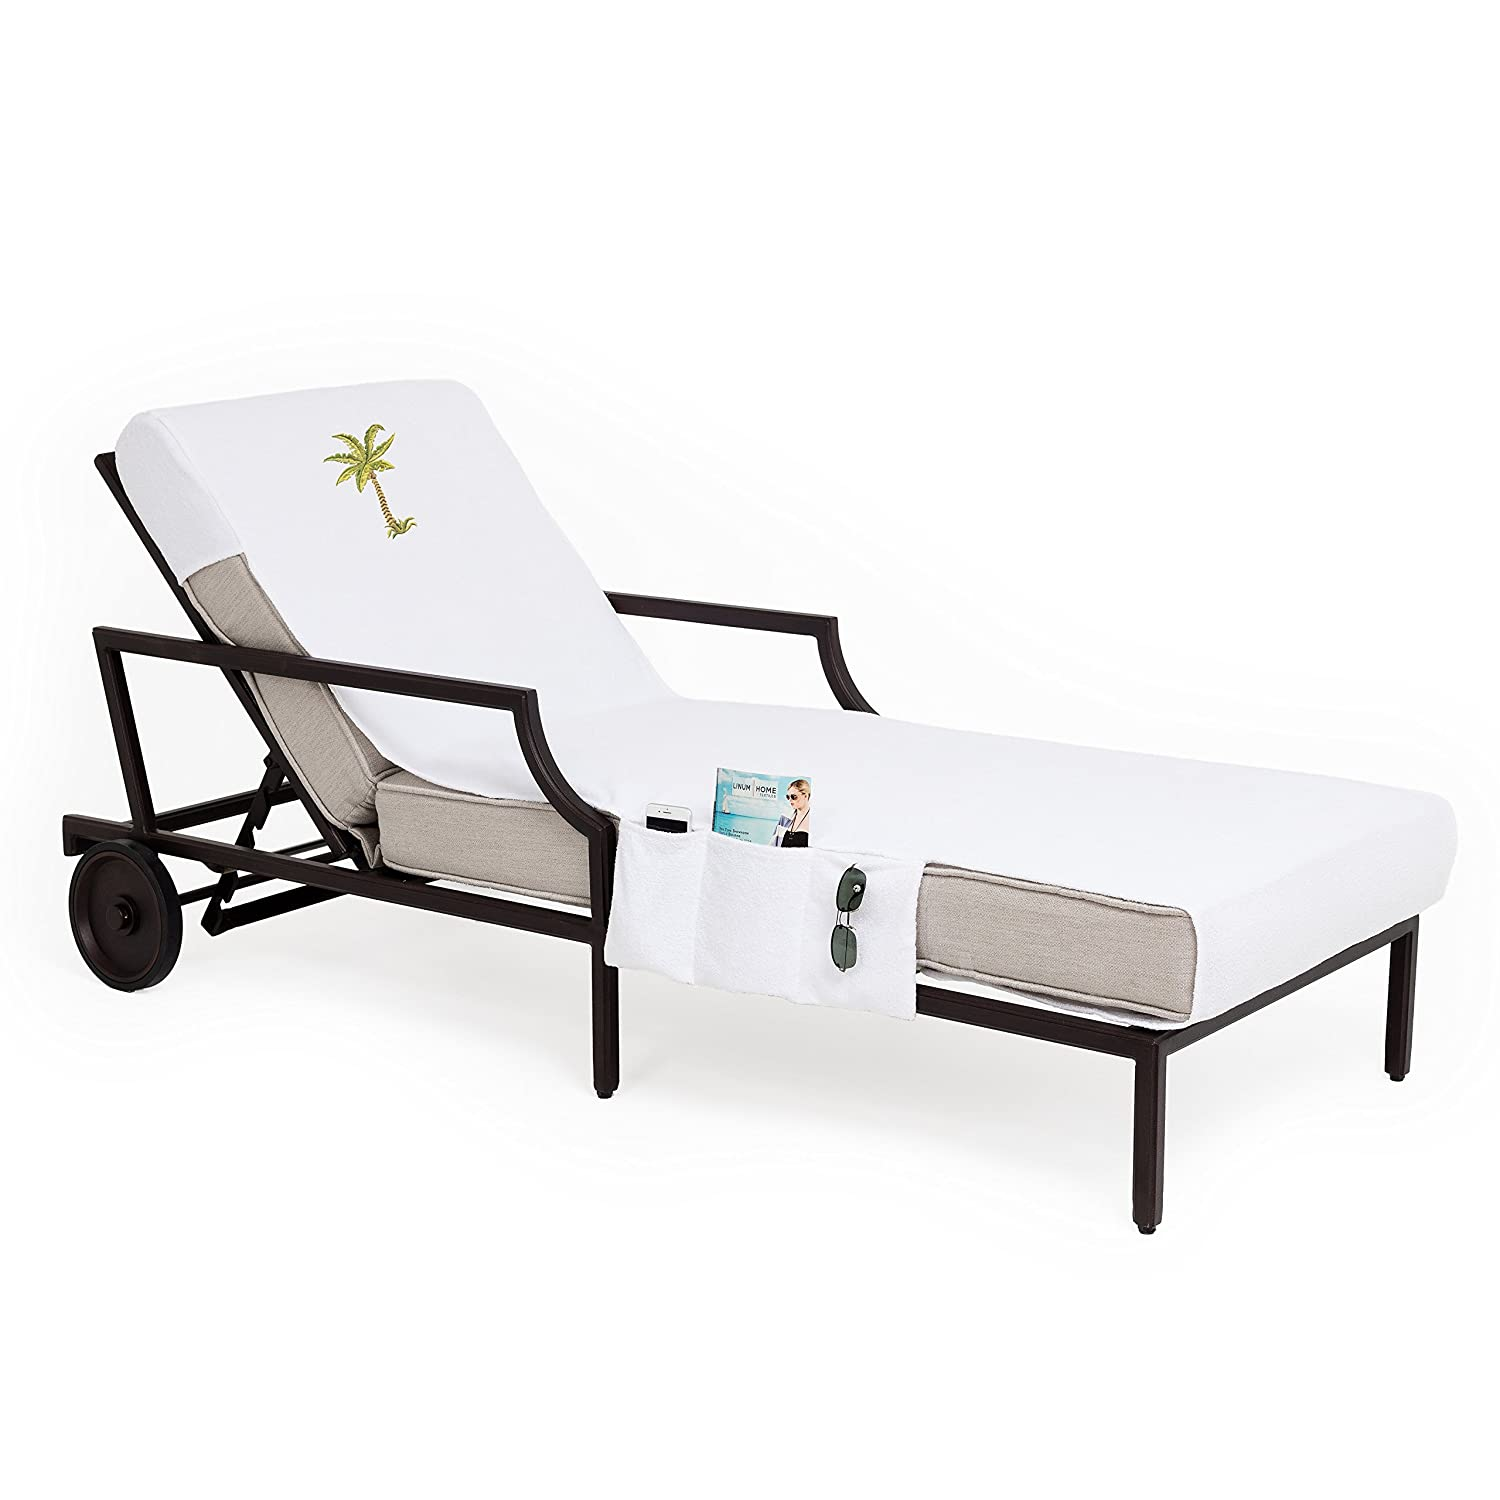 Linum Home Textiles CL00-SWP-PLM Palm Tree Chaise Lounge Cover White